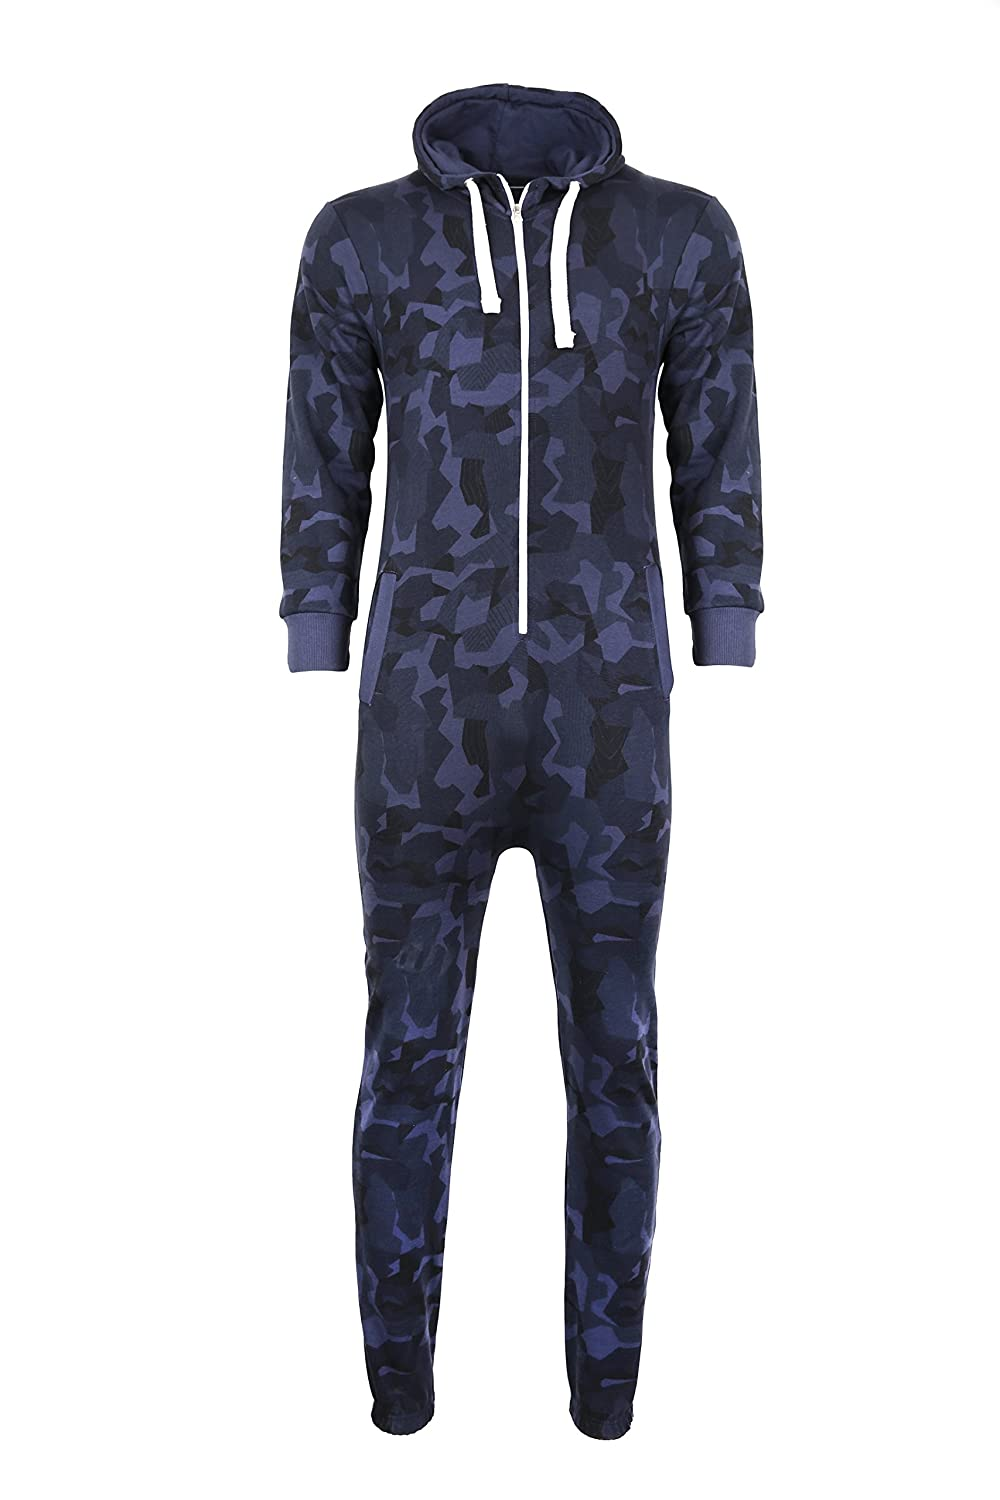 Ak Imports Mens Camouflage One Piece Pajama Hooded Zip Playsuit All in One Piece Jumpsuit